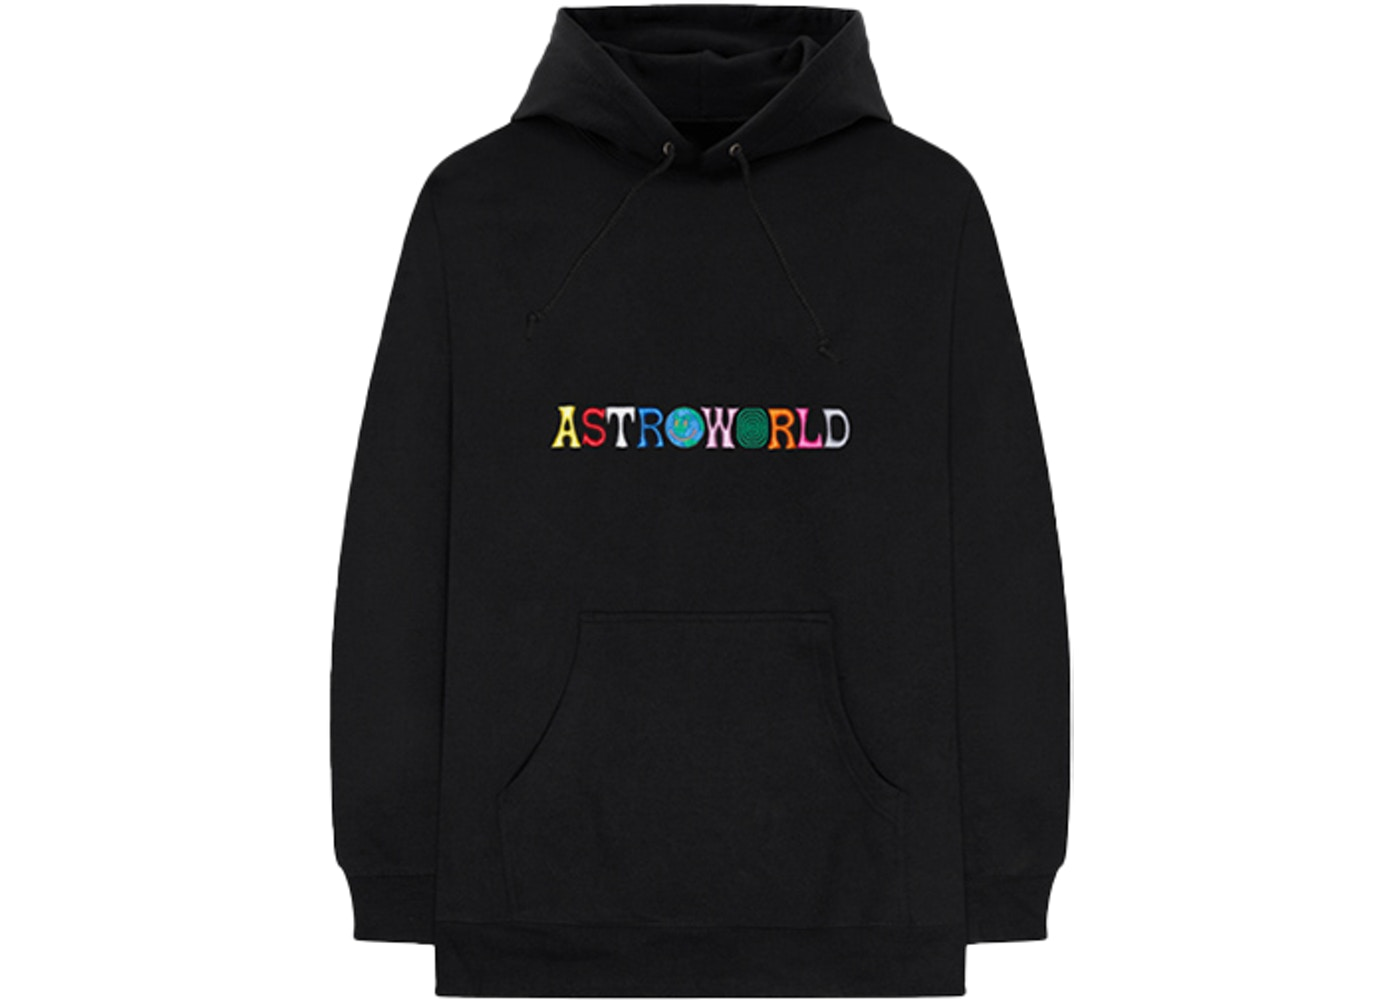 4a291e17168c Travis Scott Astroworld Wish You Were Here Hoodie Black - FW18